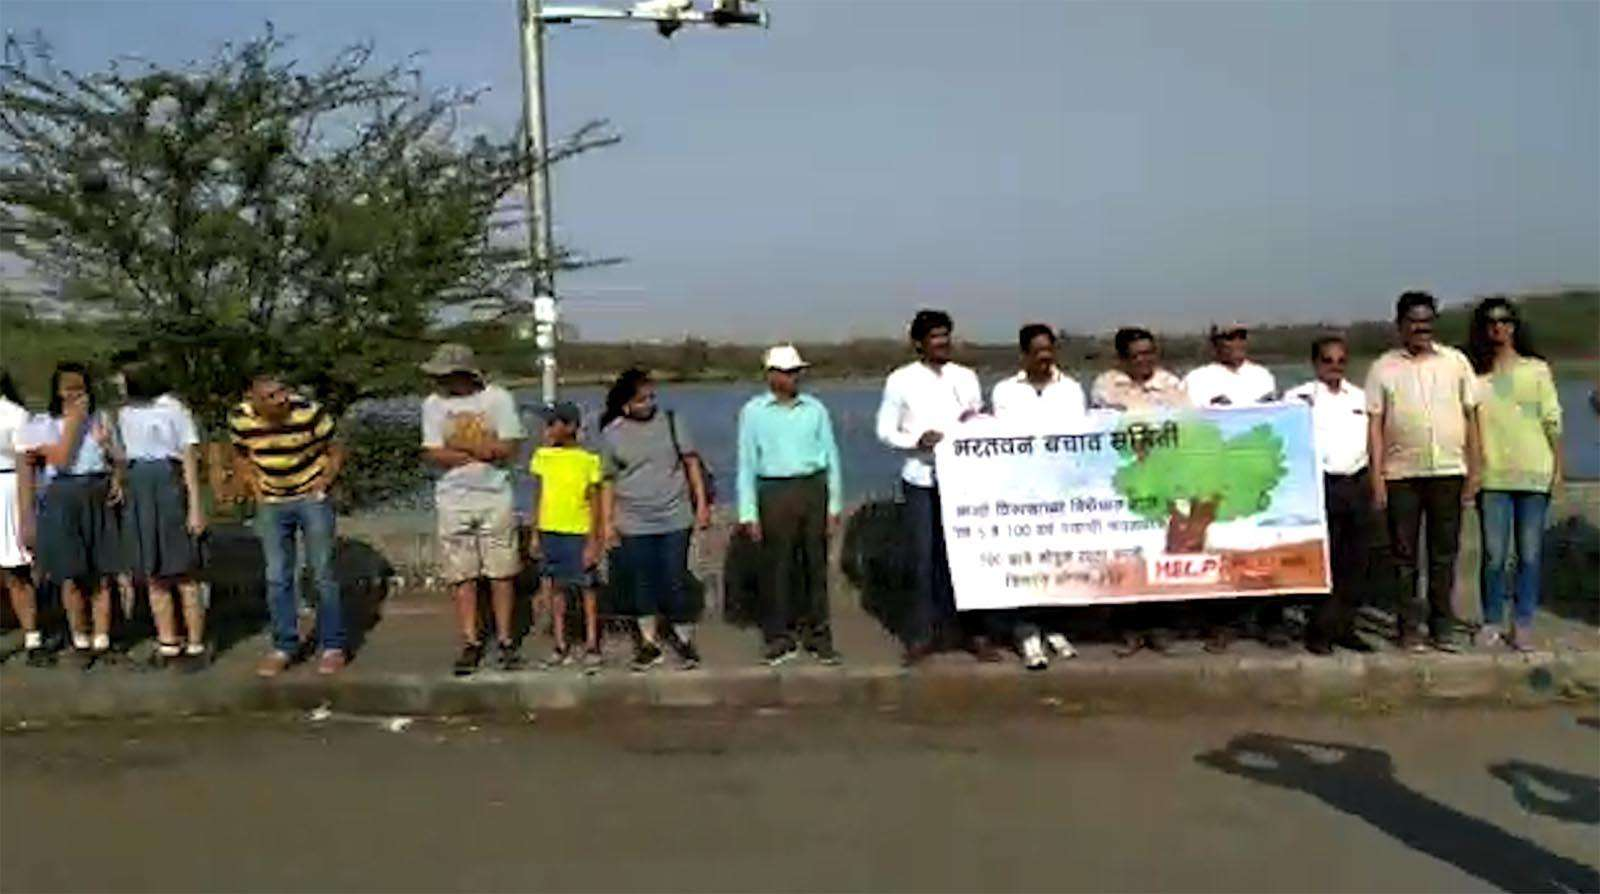 human chain formed in Bihar: Latest News, Videos and Photos